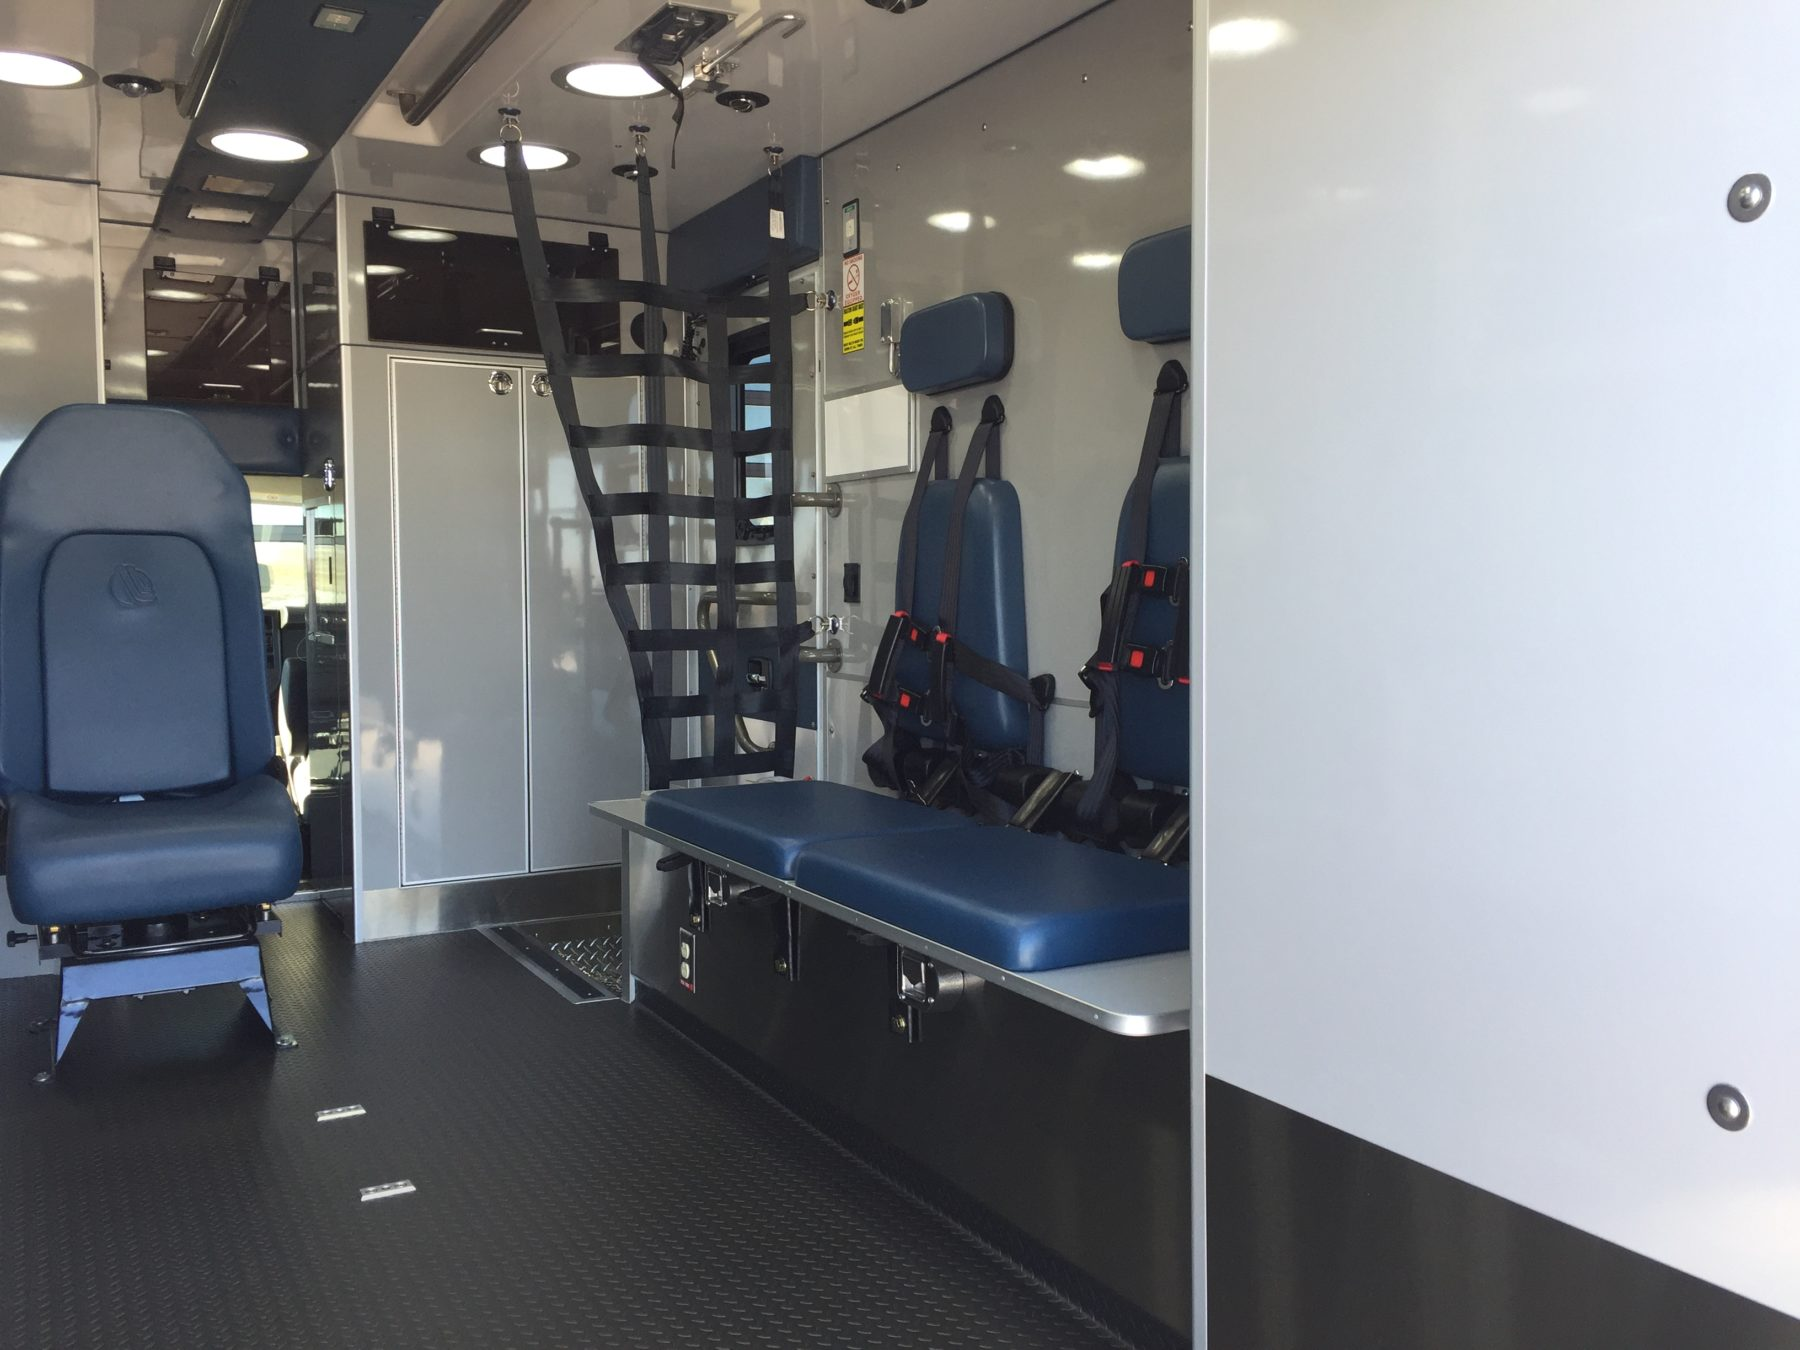 2018 Chevrolet G4500 Type 3 Ambulance For Sale – Picture 12